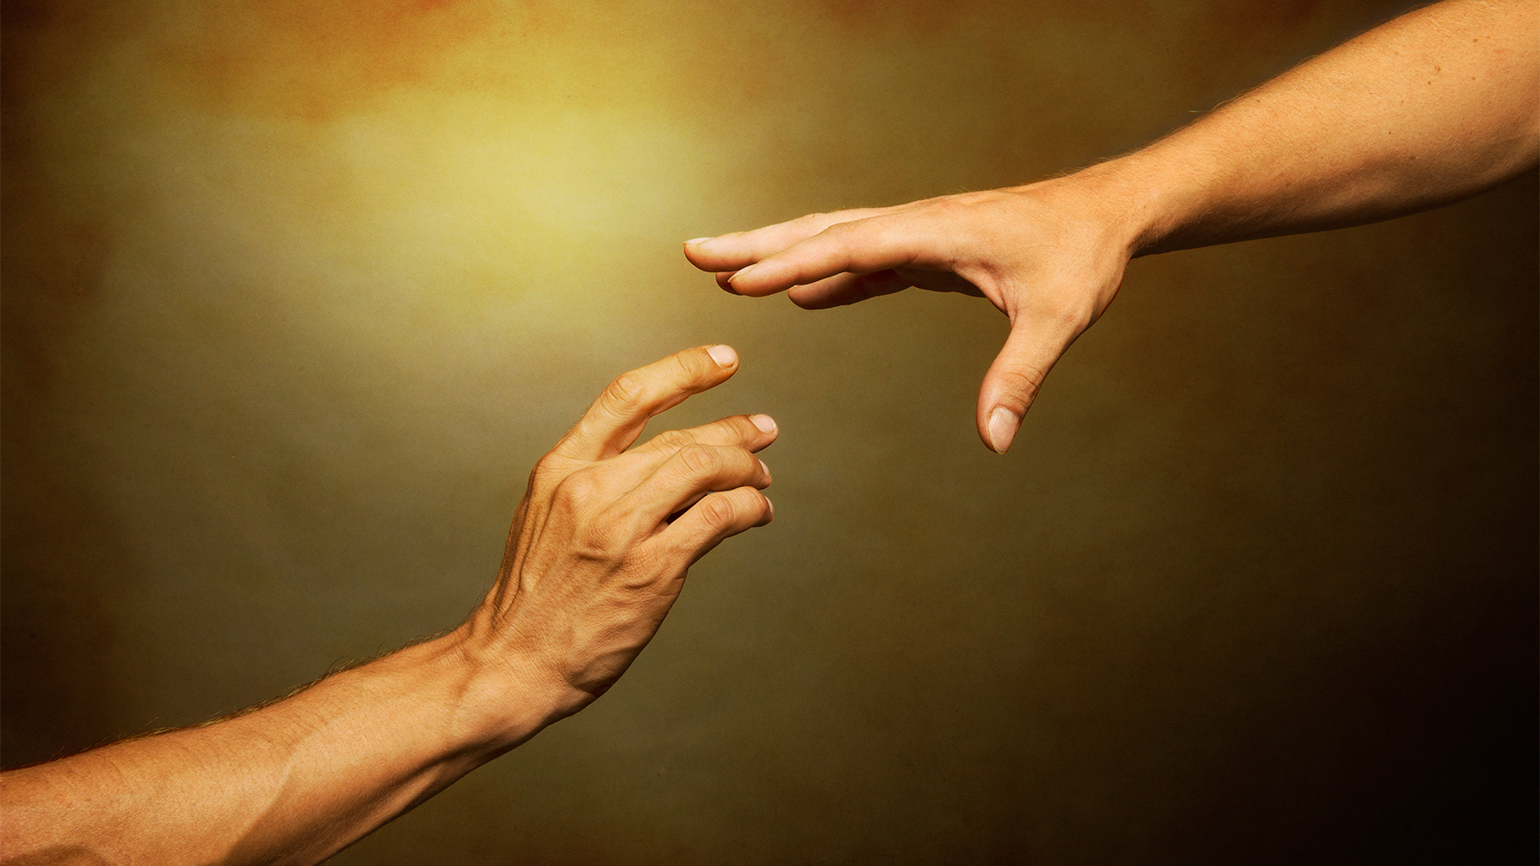 Two outstretched reach for each other